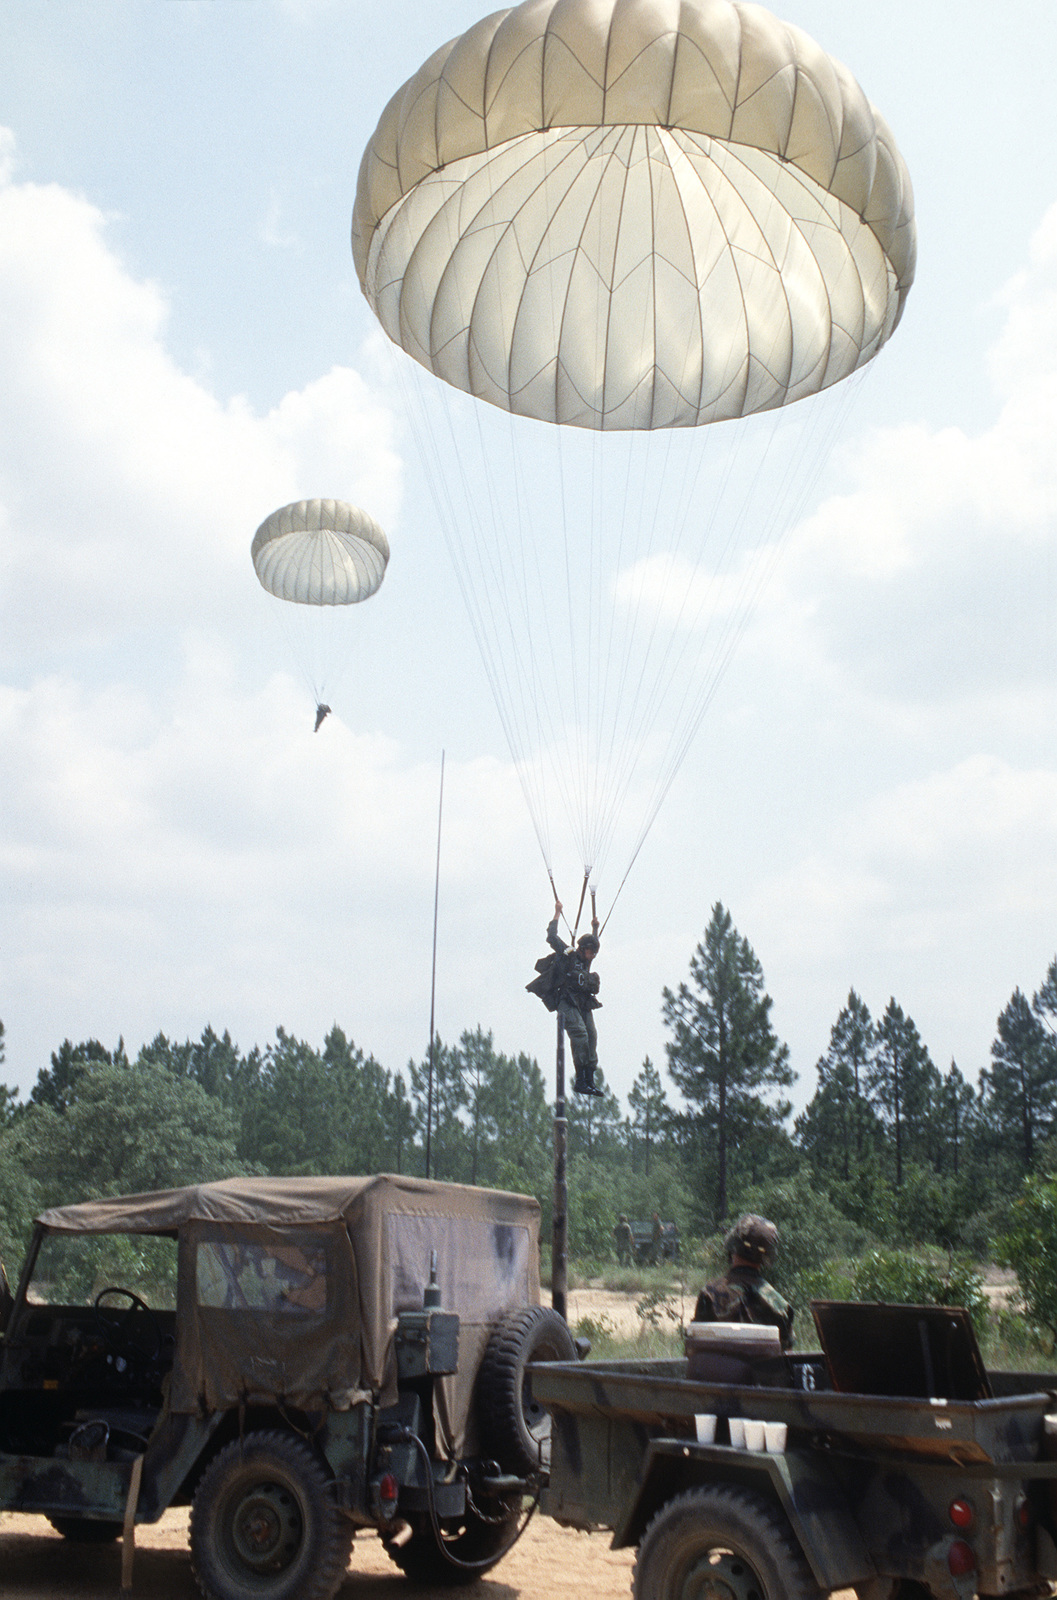 An airman decends to the ground after parachuting from a C-130 Hercules aircraft during VOLANT RODEO '86, an annual, multi-national tactical airlift competition